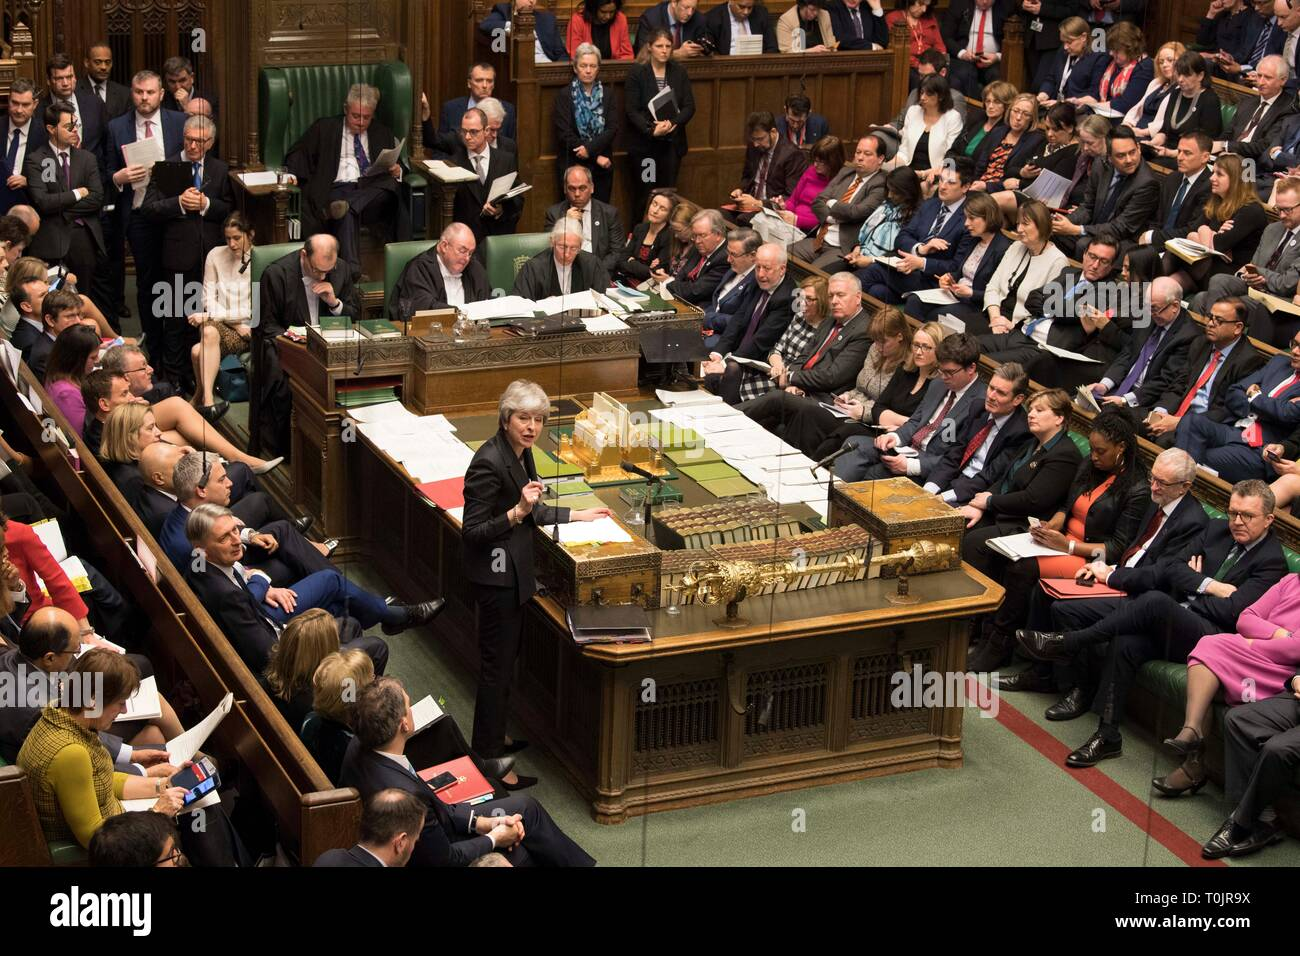 London, UK. 20th Mar, 2019. British Prime Minister Theresa May (C) speaks during the Prime Minister's Question Time in the House of Commons in London, Britain, on March 20, 2019. Theresa May confirmed Wednesday she has written to the European Union seeking to delay Britain's departure from the bloc until June 30. Credit: UK Parliament/Mark Duffy/Xinhua/Alamy Live News - Stock Image